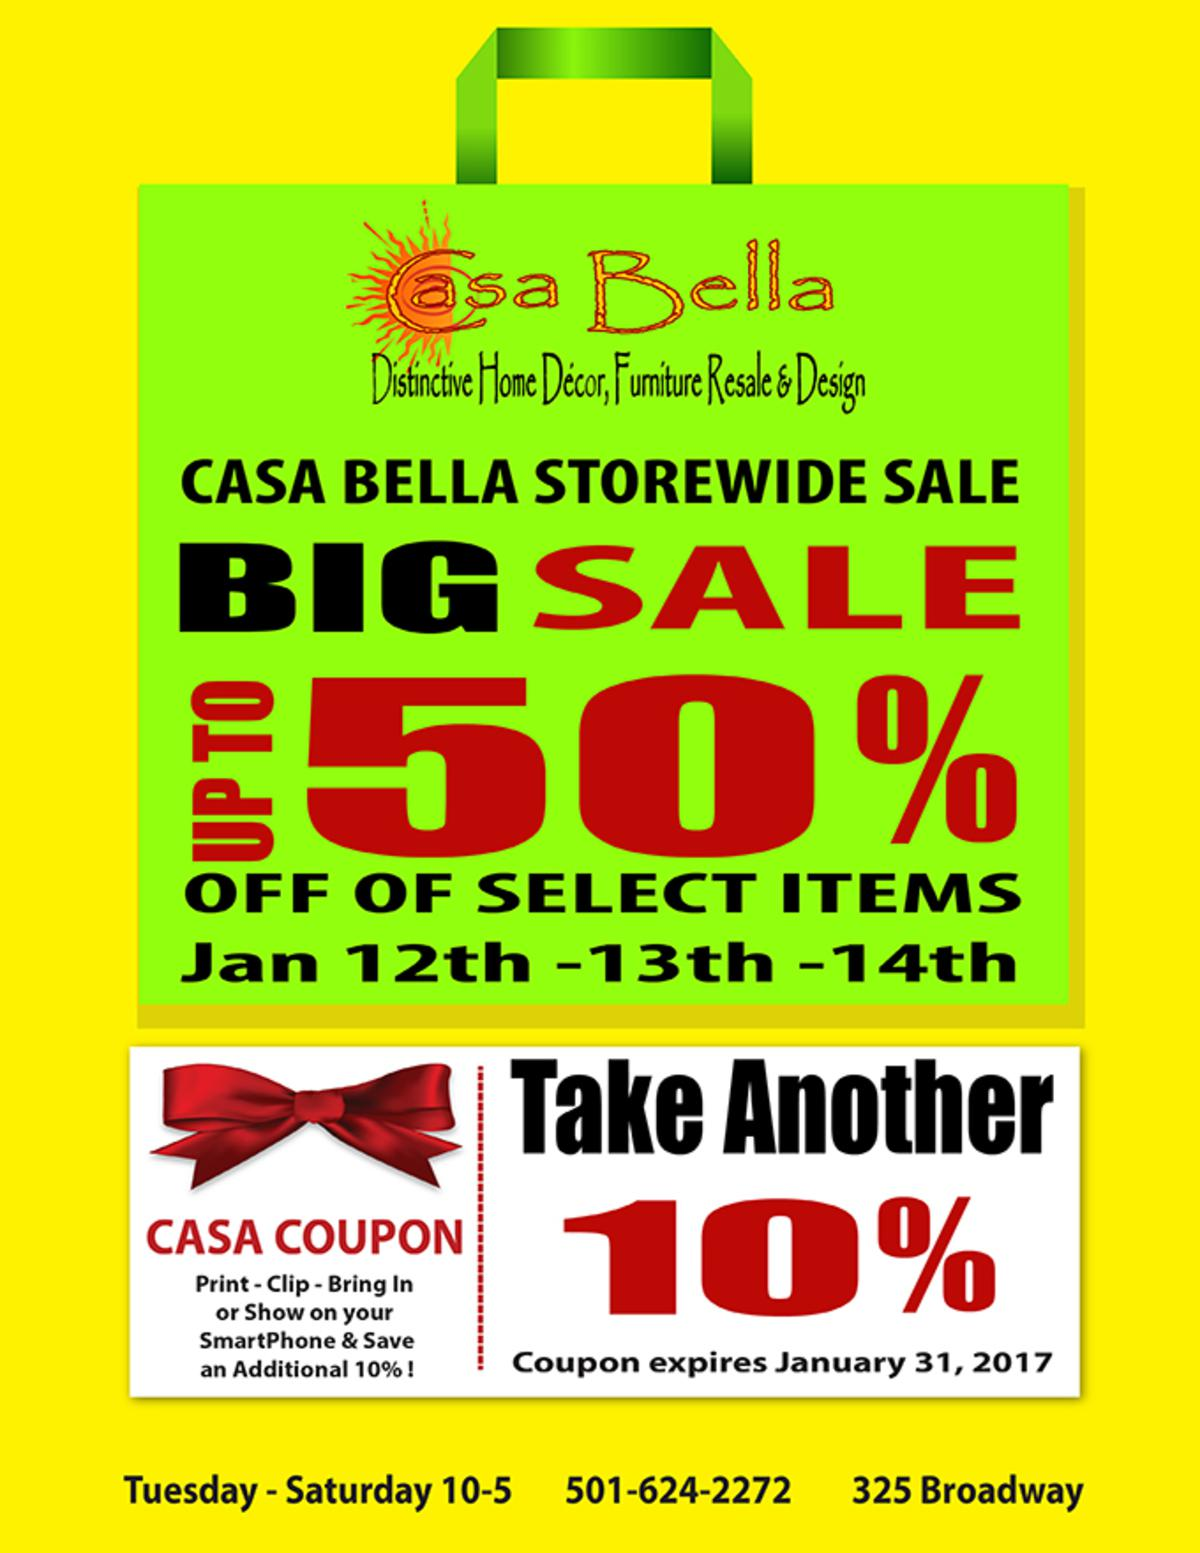 casa bella home - blog about consignment furnitur, home decor and